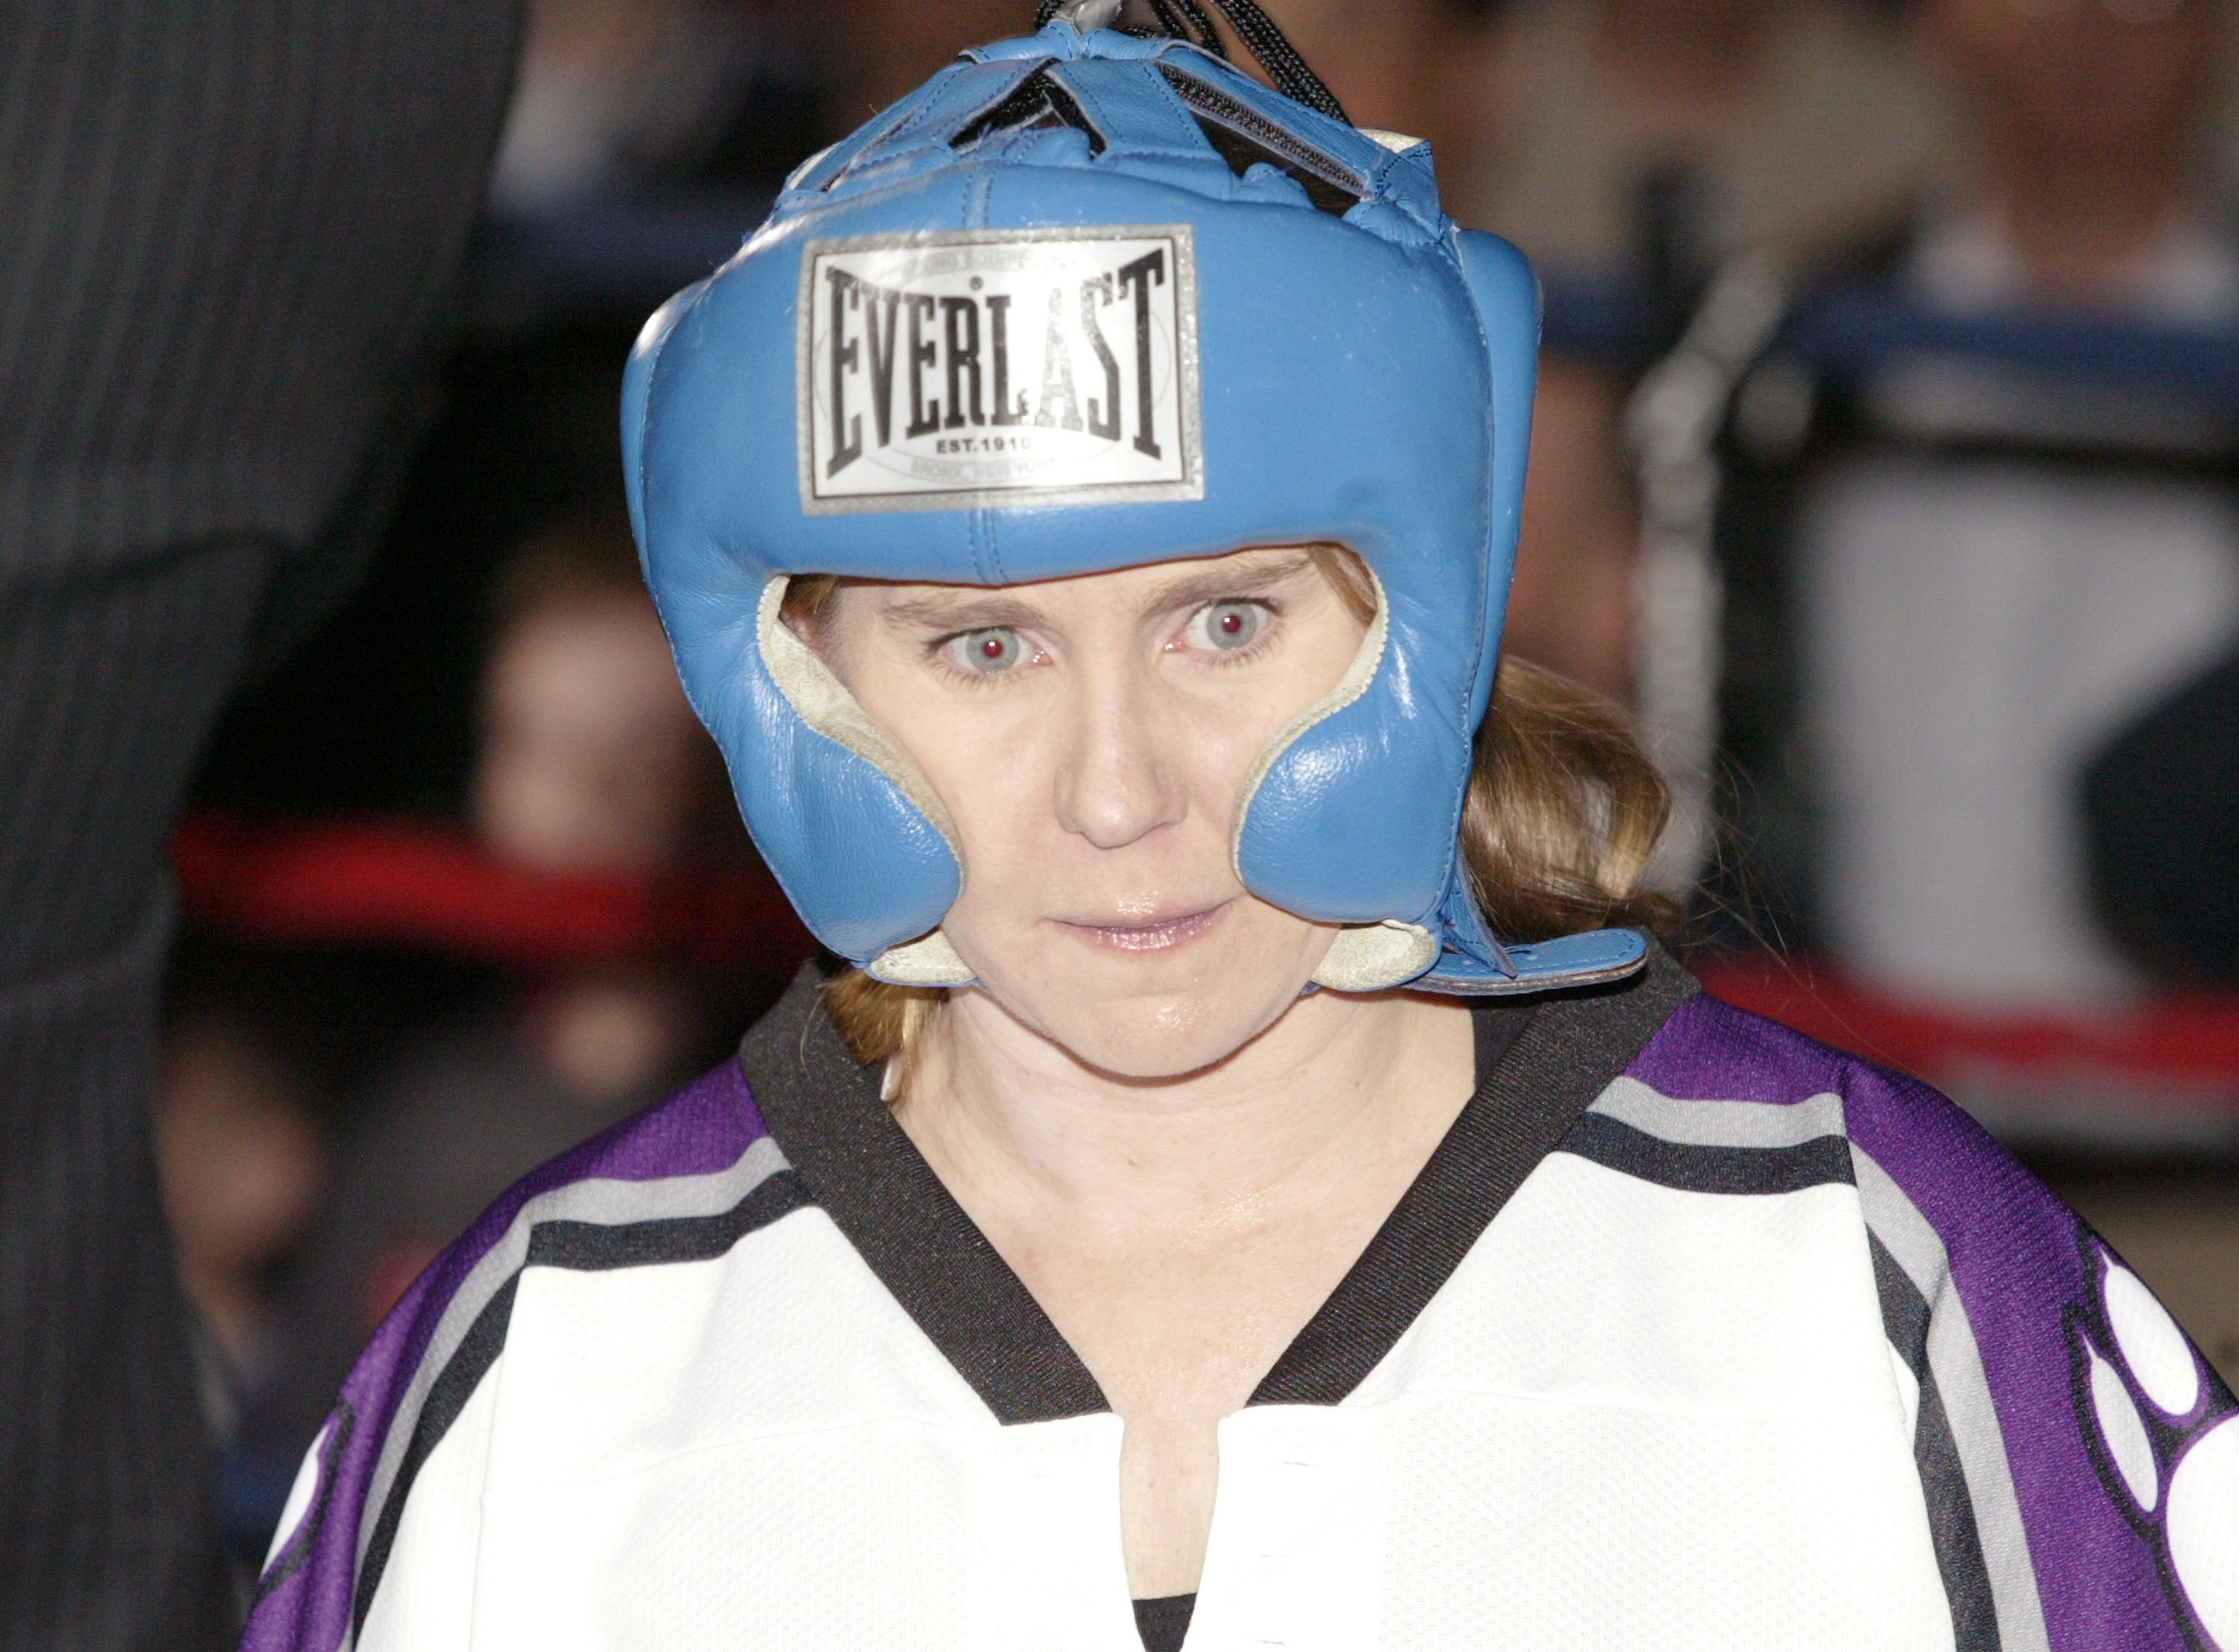 Tonya Harding participates in exhibition boxing in 2004 | Source: Getty Images